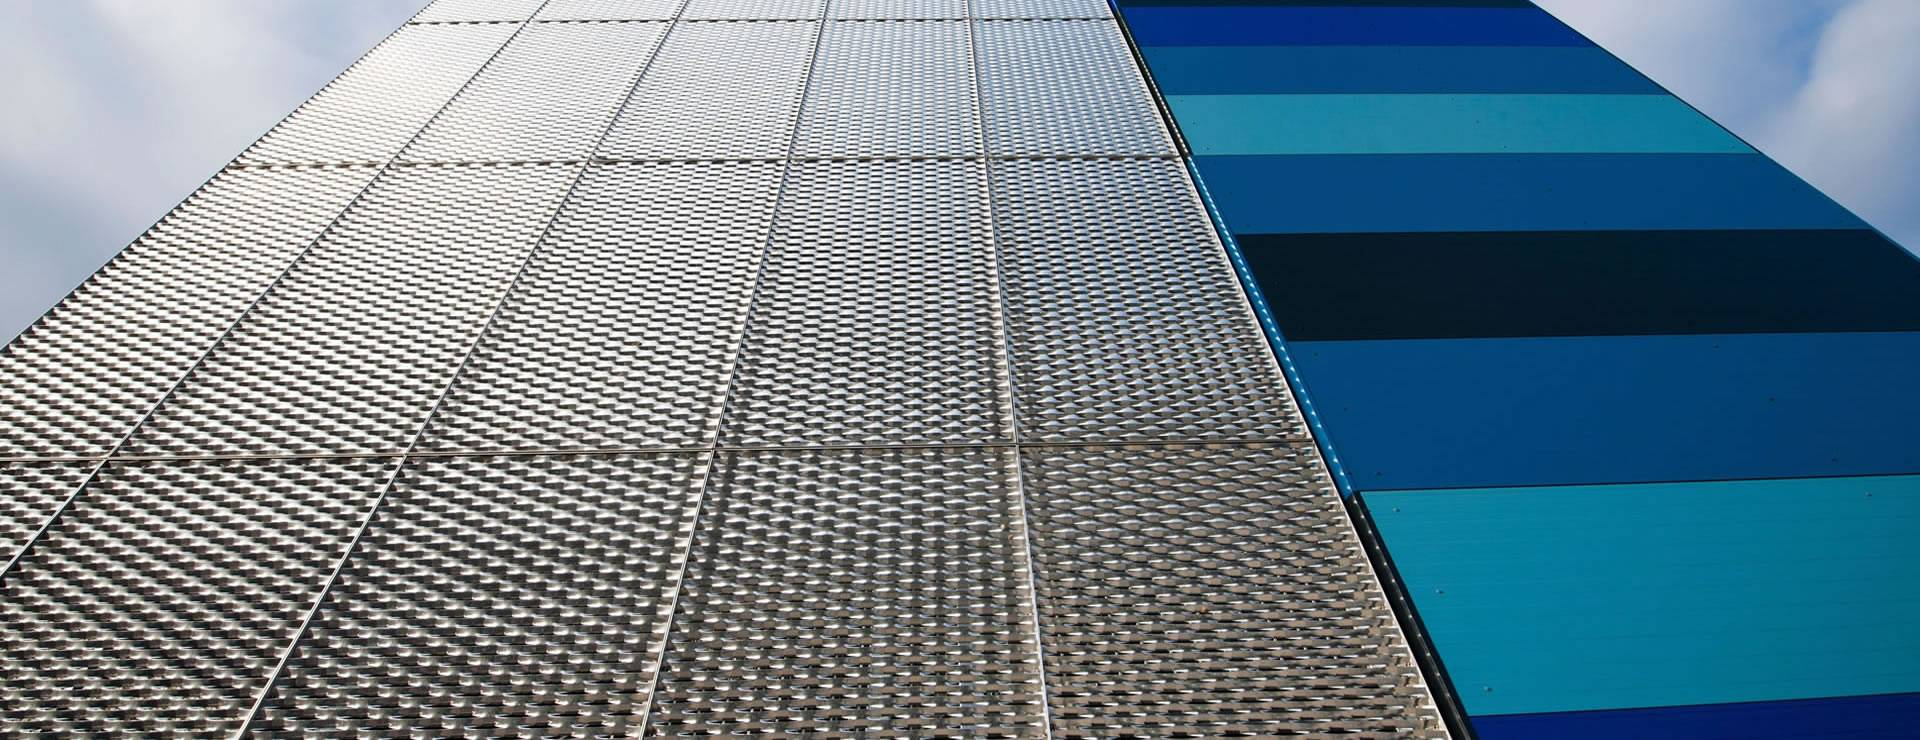 Raised expanded metal meshes with diamond holes are installed on the facades.